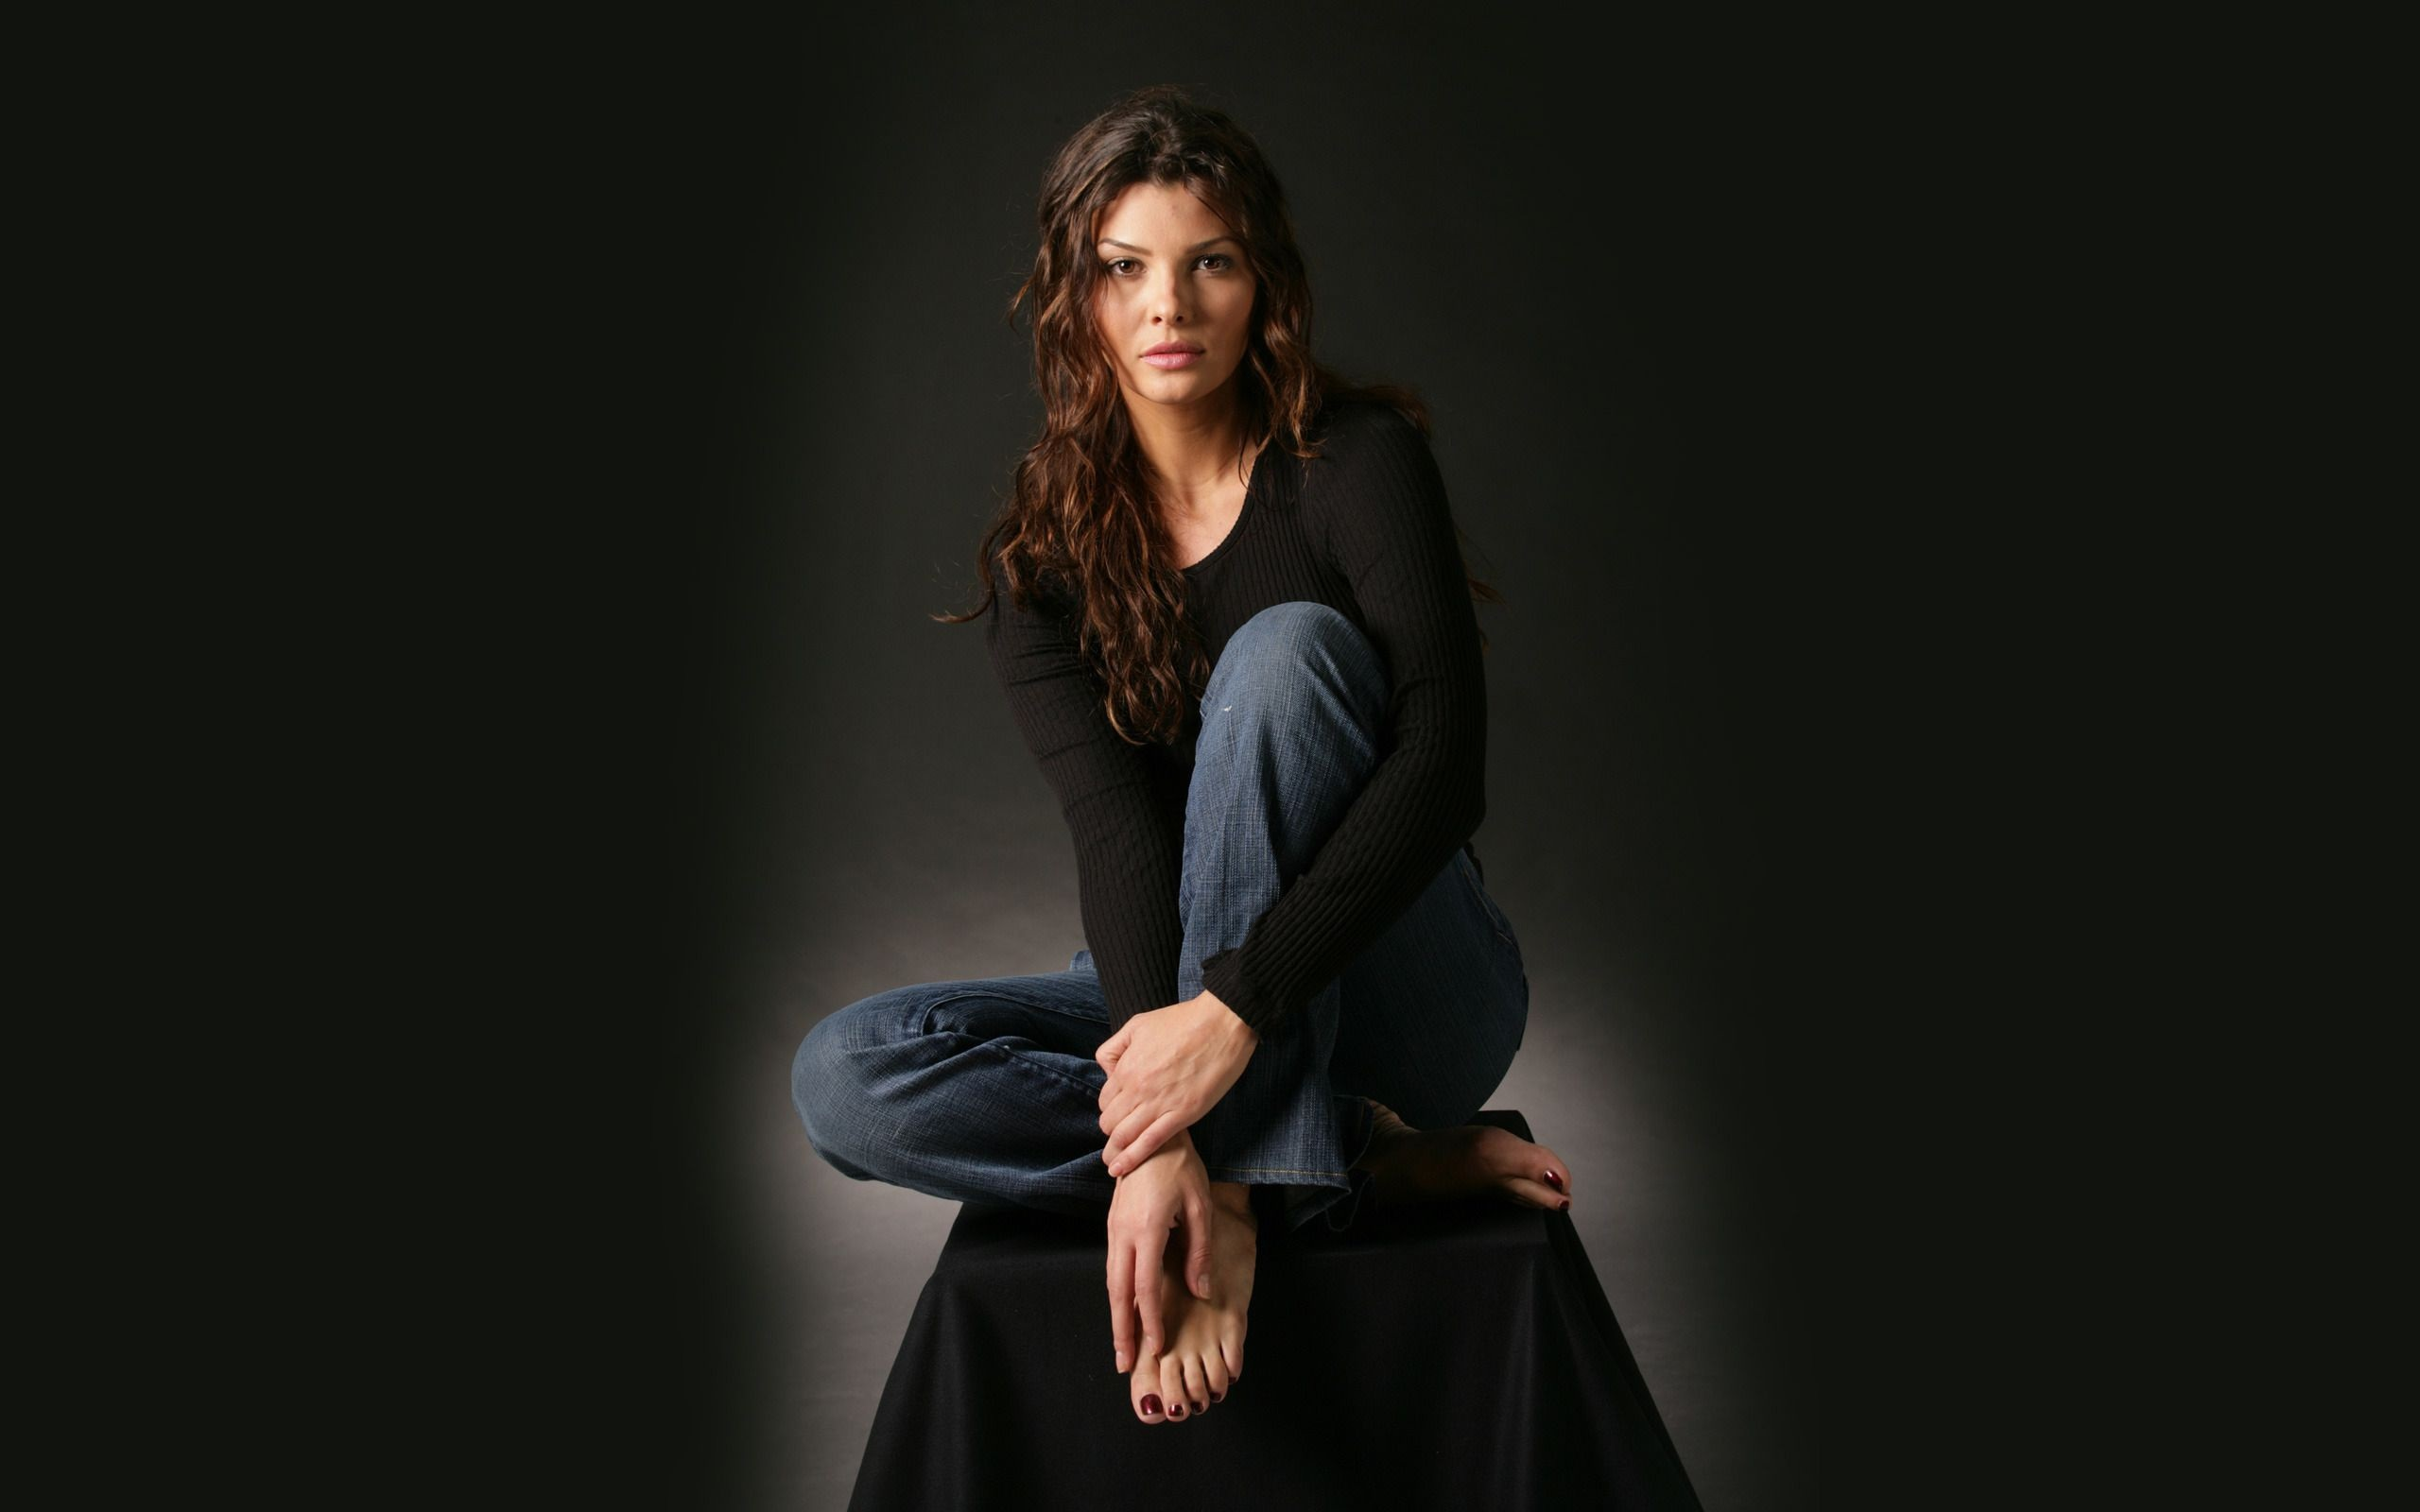 Ali Landry Wallpapers Backgrounds